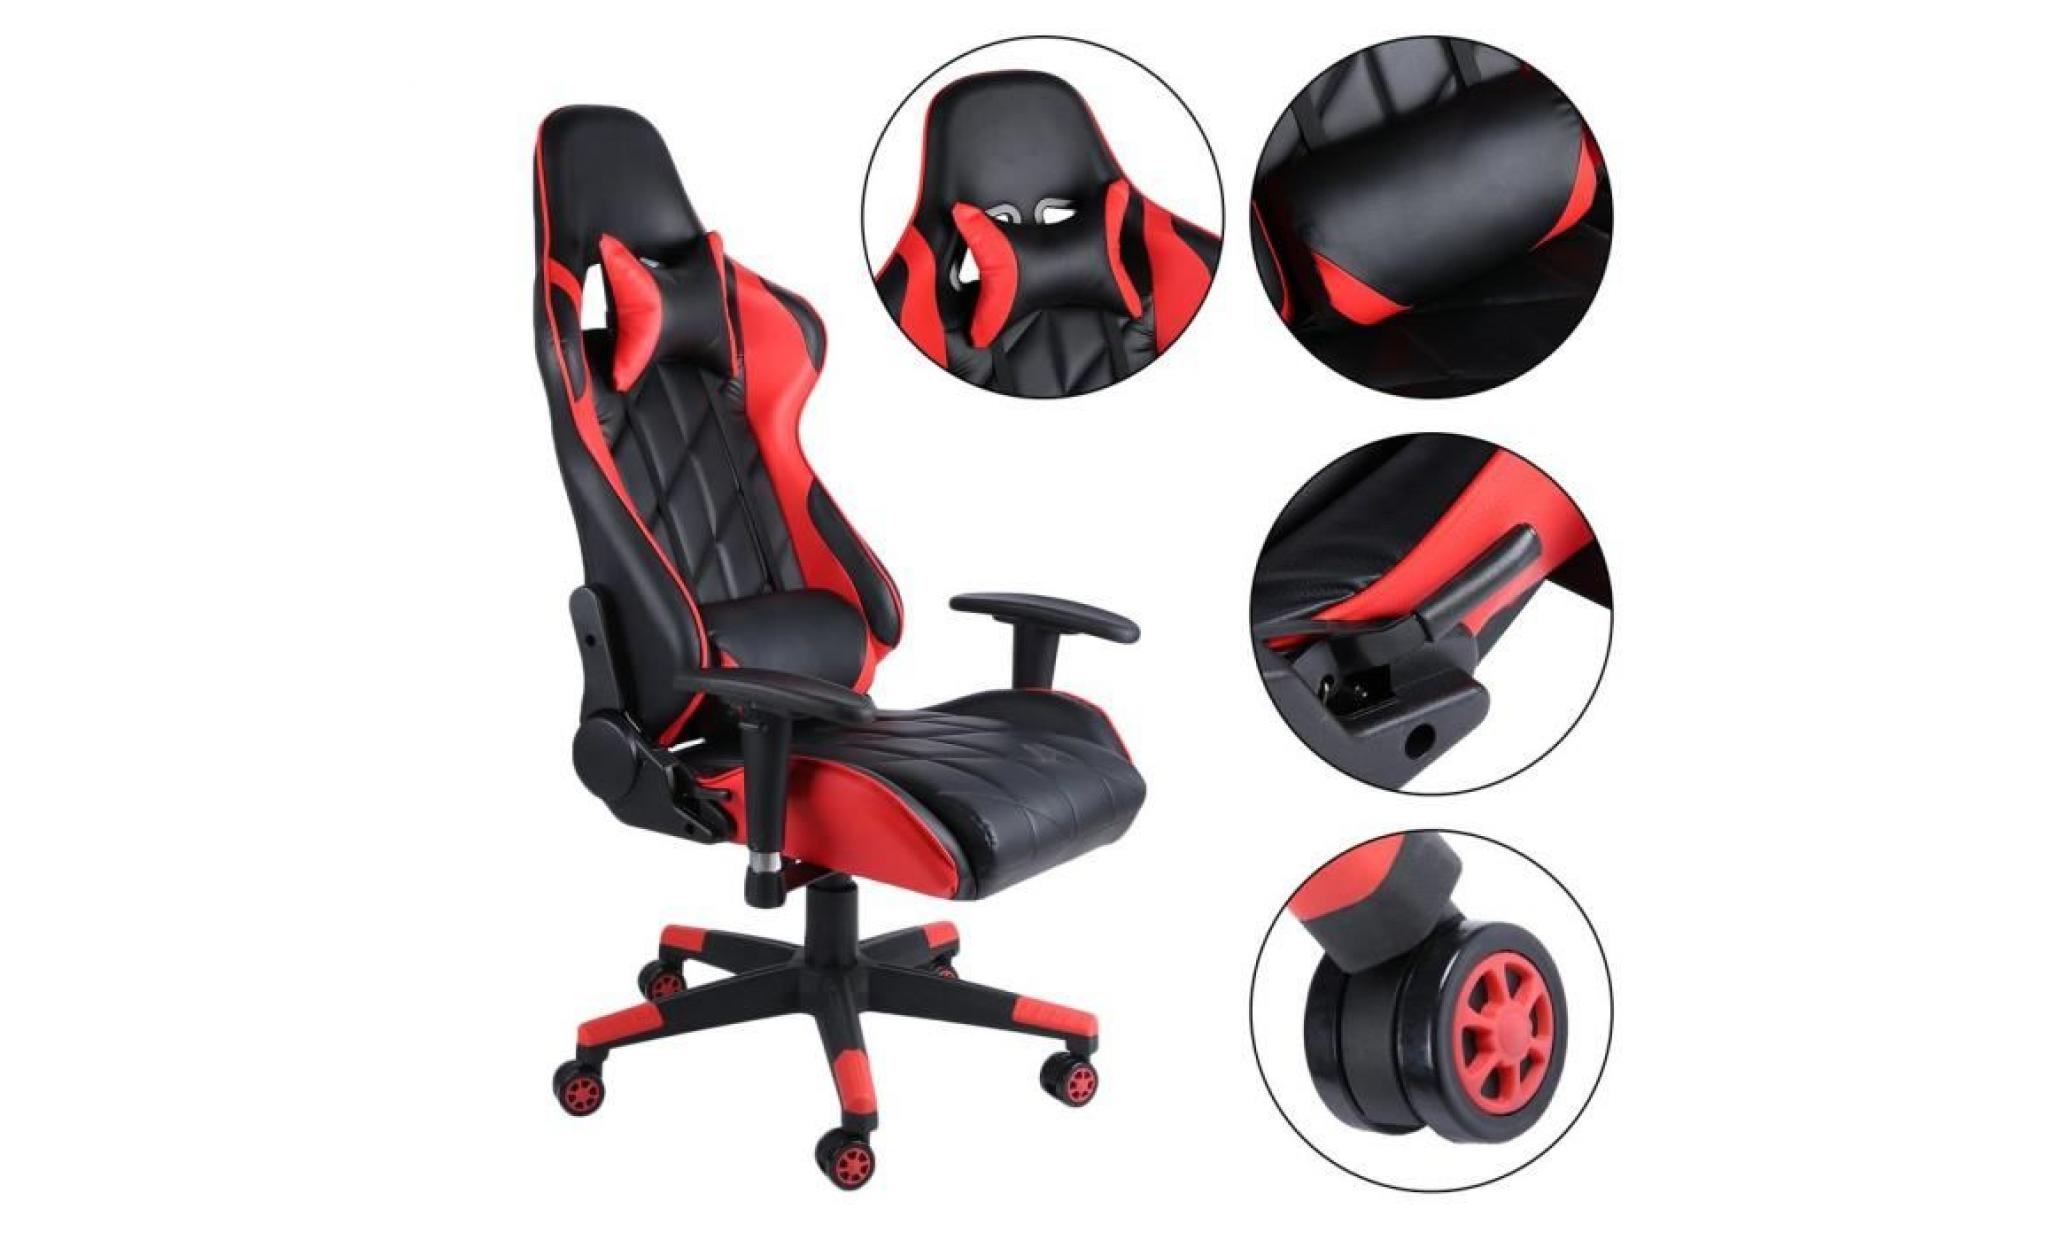 Chaise De Bureau Gaming Design Baquet Style Contemporain Rouge